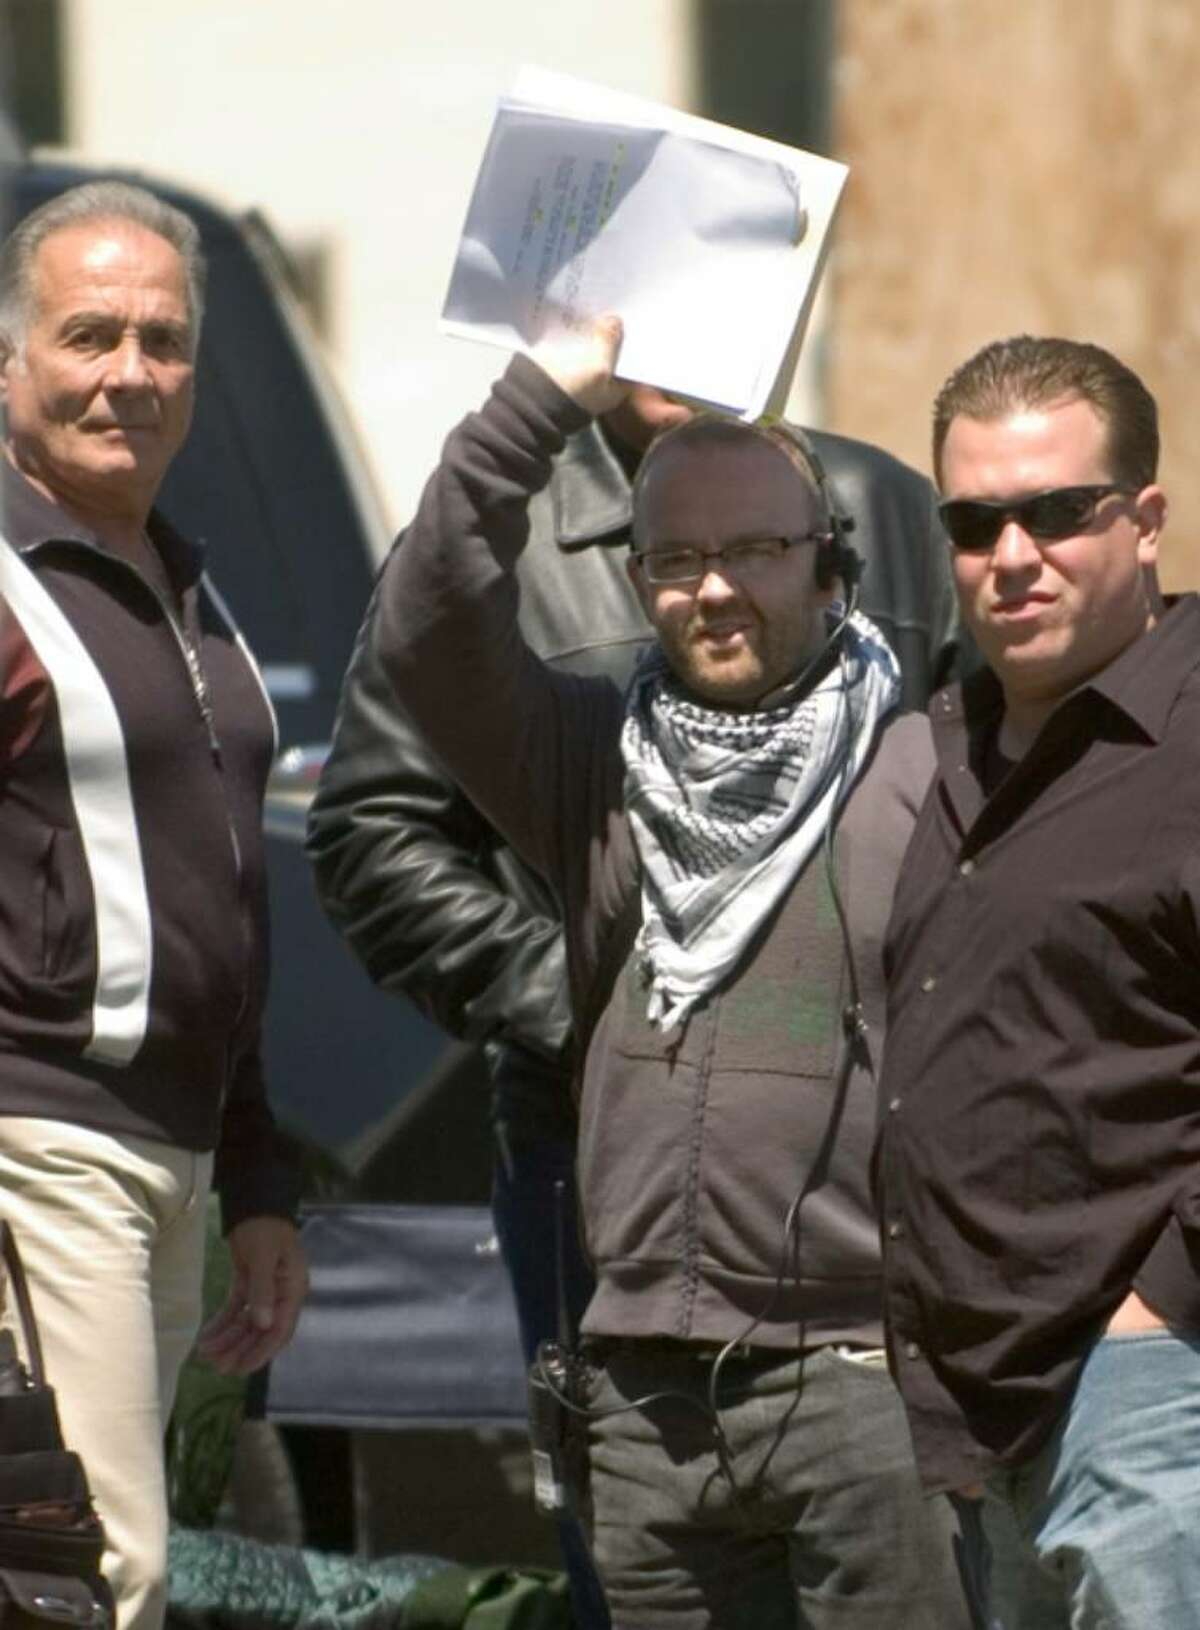 Actor Arthur J. Nascarella, left, and production employees, right, intentionally block a photographers view of Steven Seagal, during a break in filming of Marker, a Steven Seagal film in downtown Stamford, Conn. on Monday, May 7, 2007.